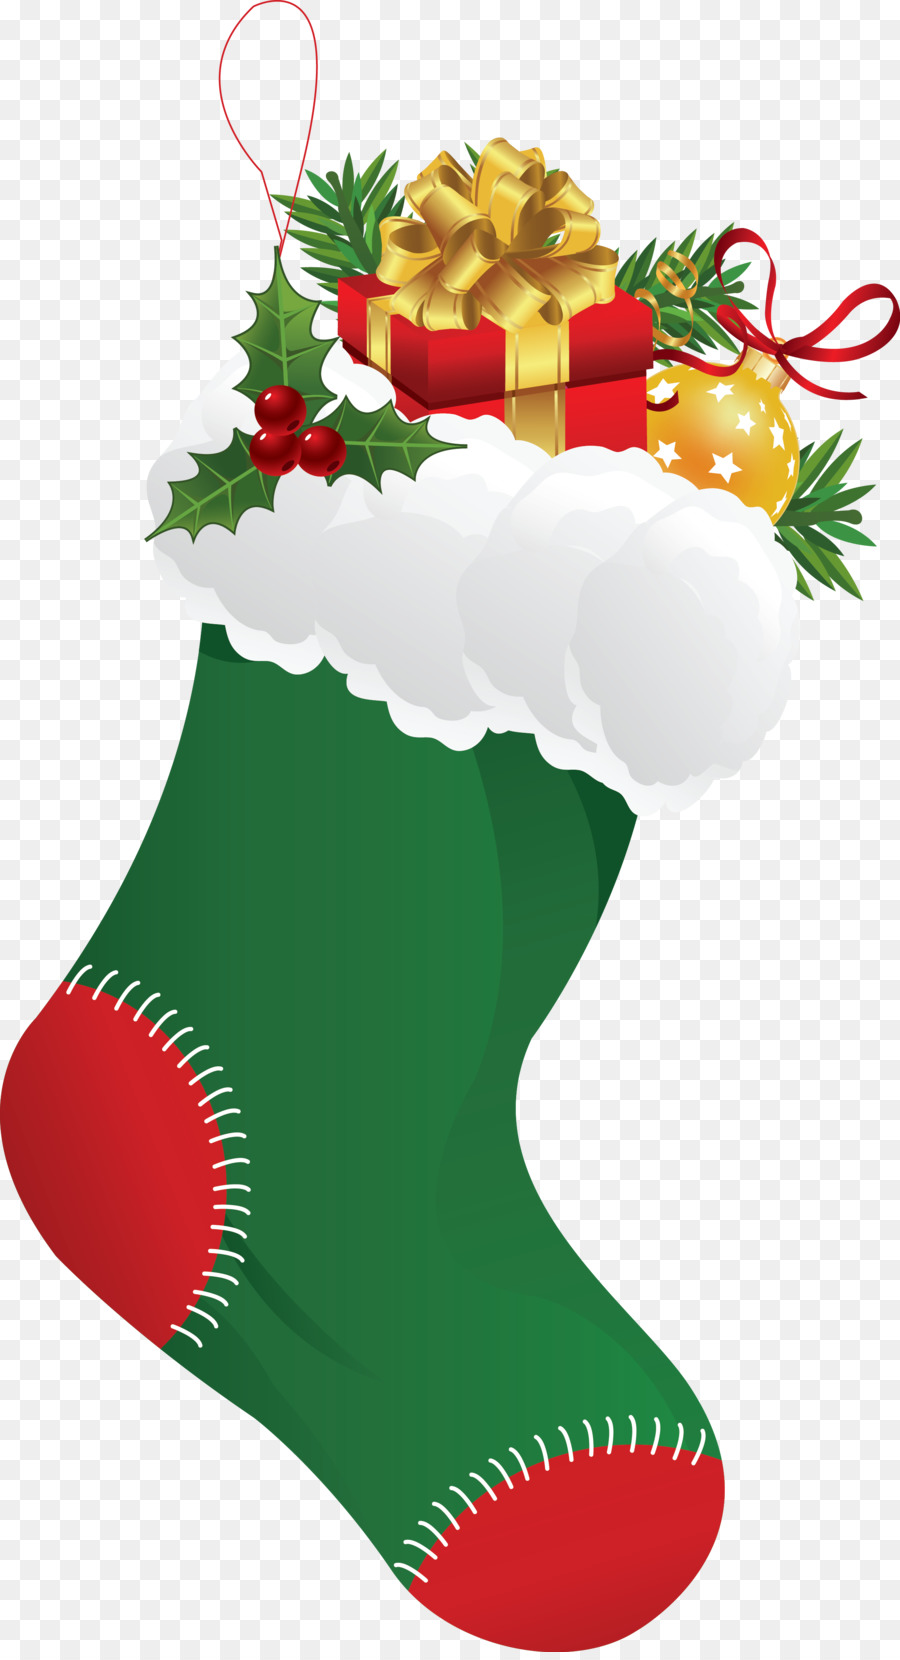 Christmas Stocking Cartoontransparent png image & clipart free download.